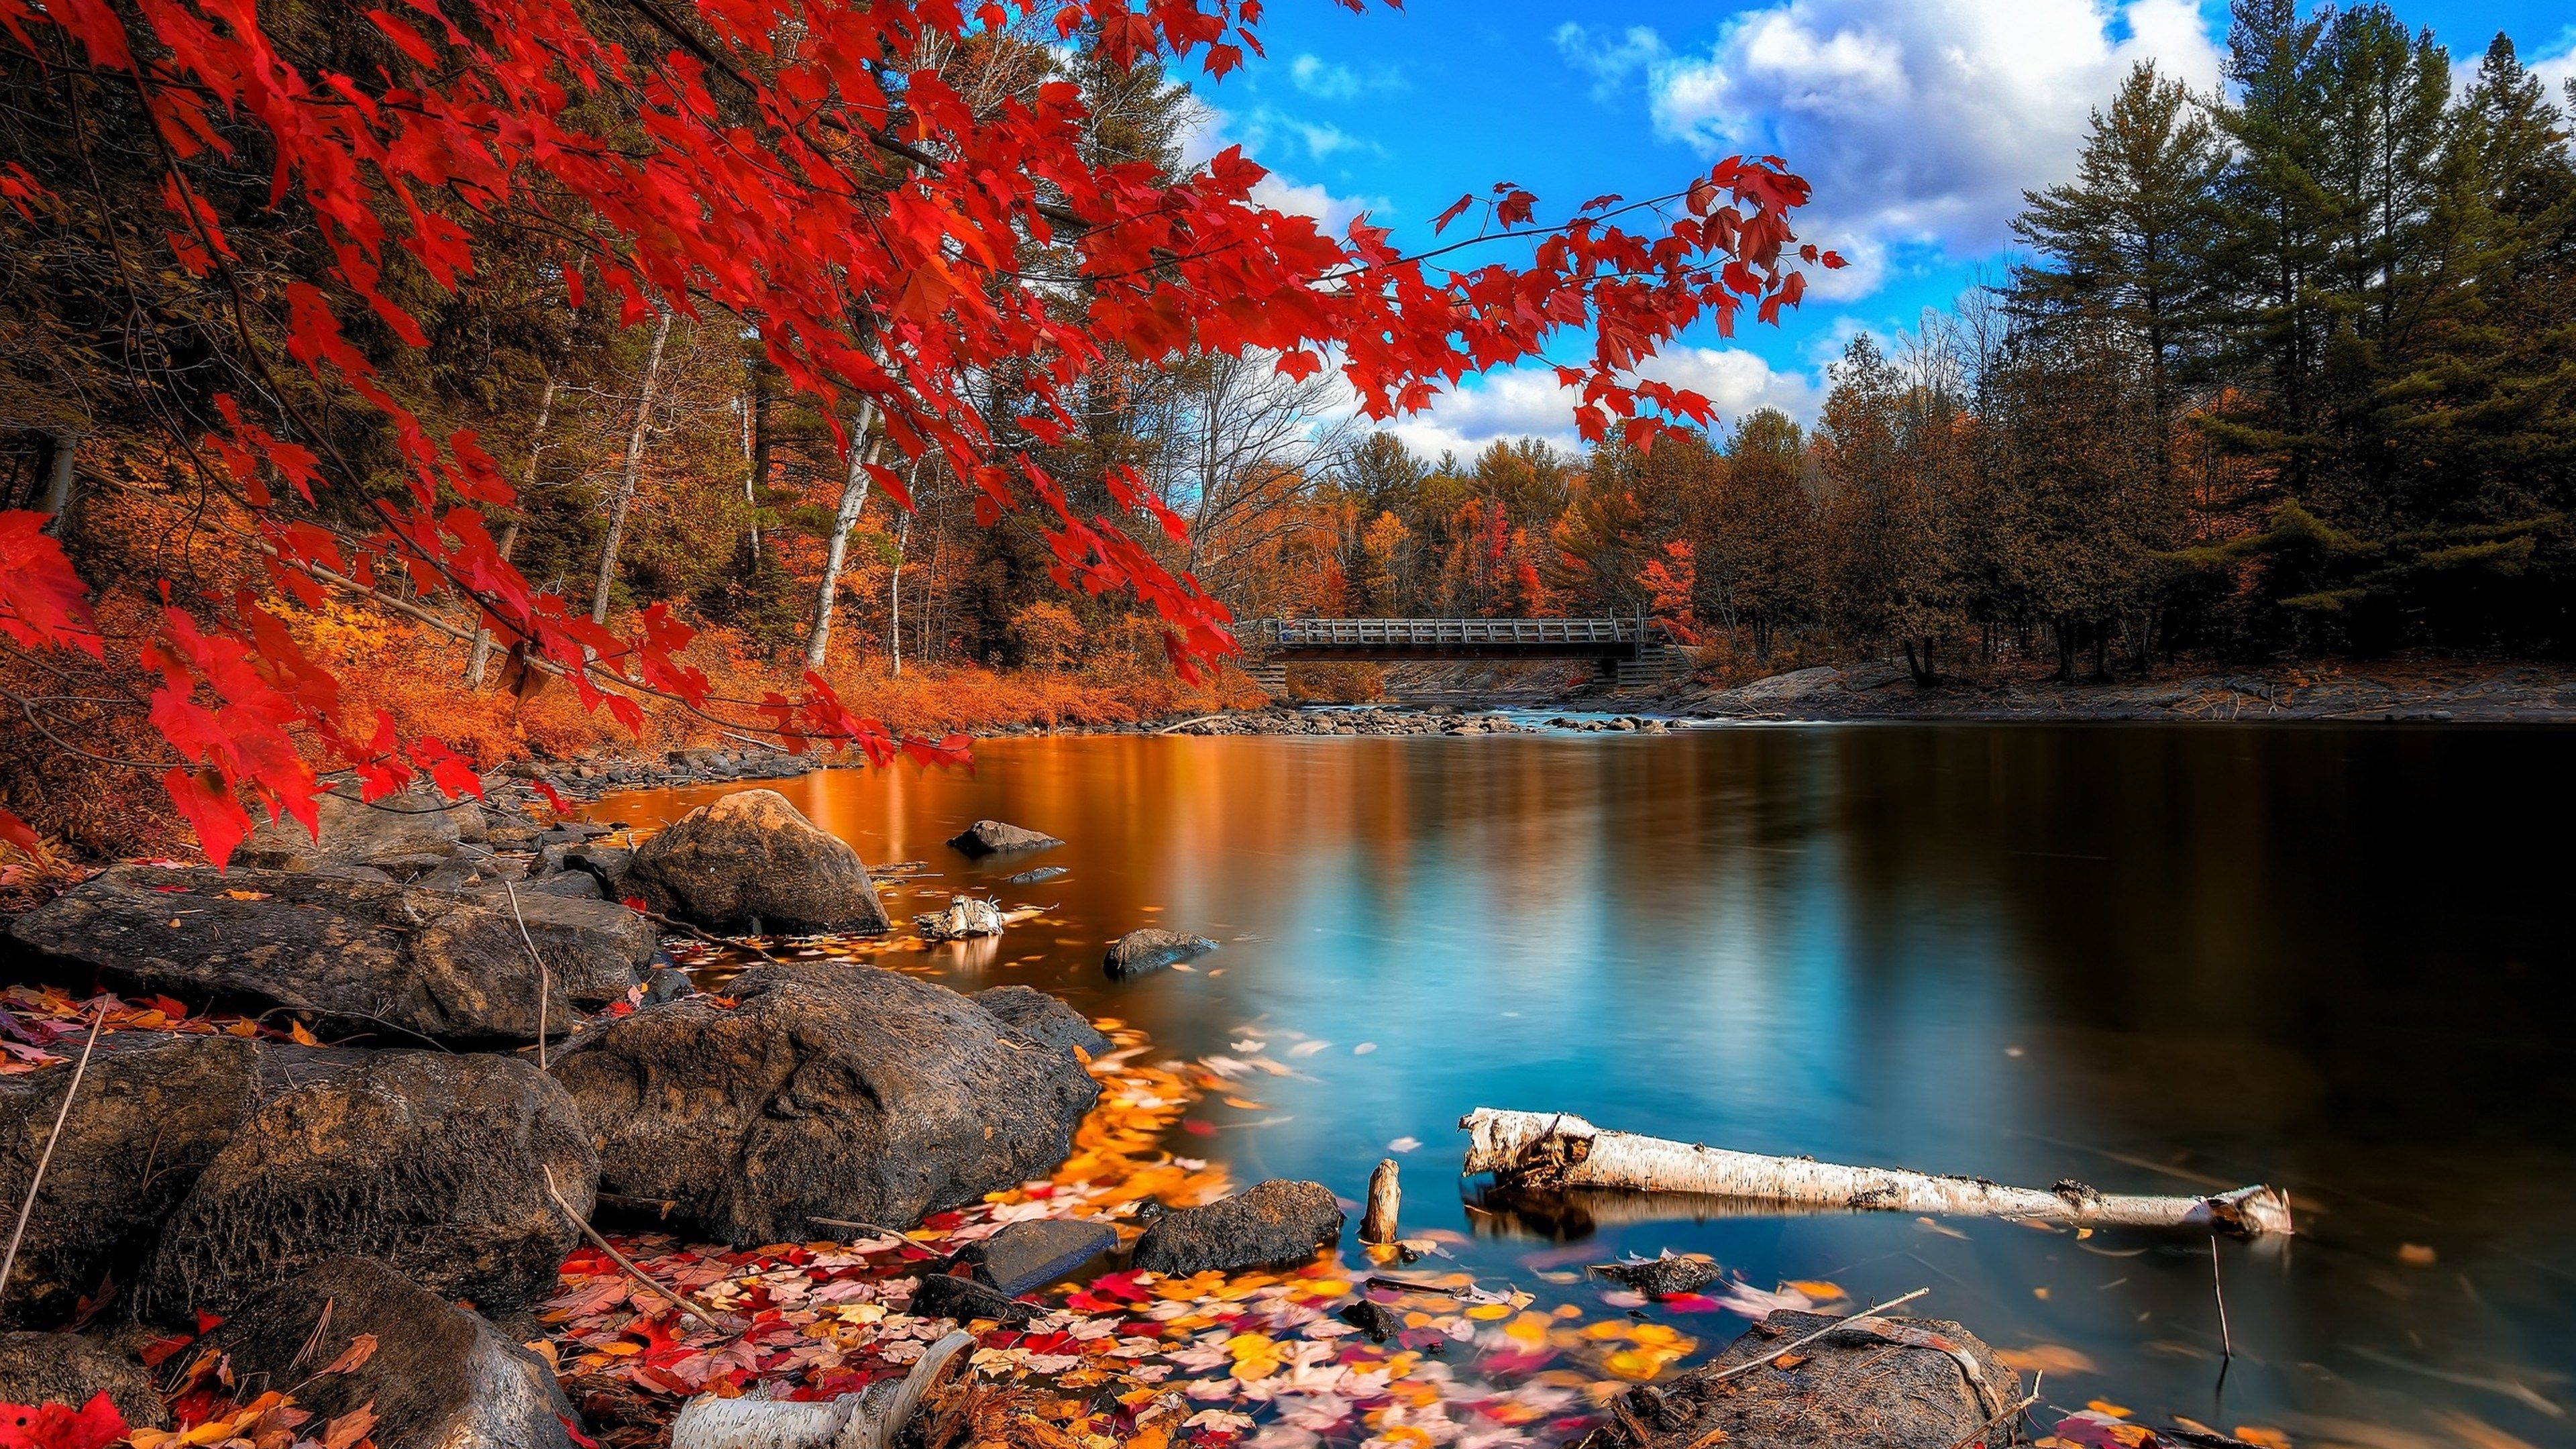 3840x2160 Nature 4k Desktop Wallpaper Cool Nature Desktop Autumn Scenery Hd Nature Wallpapers